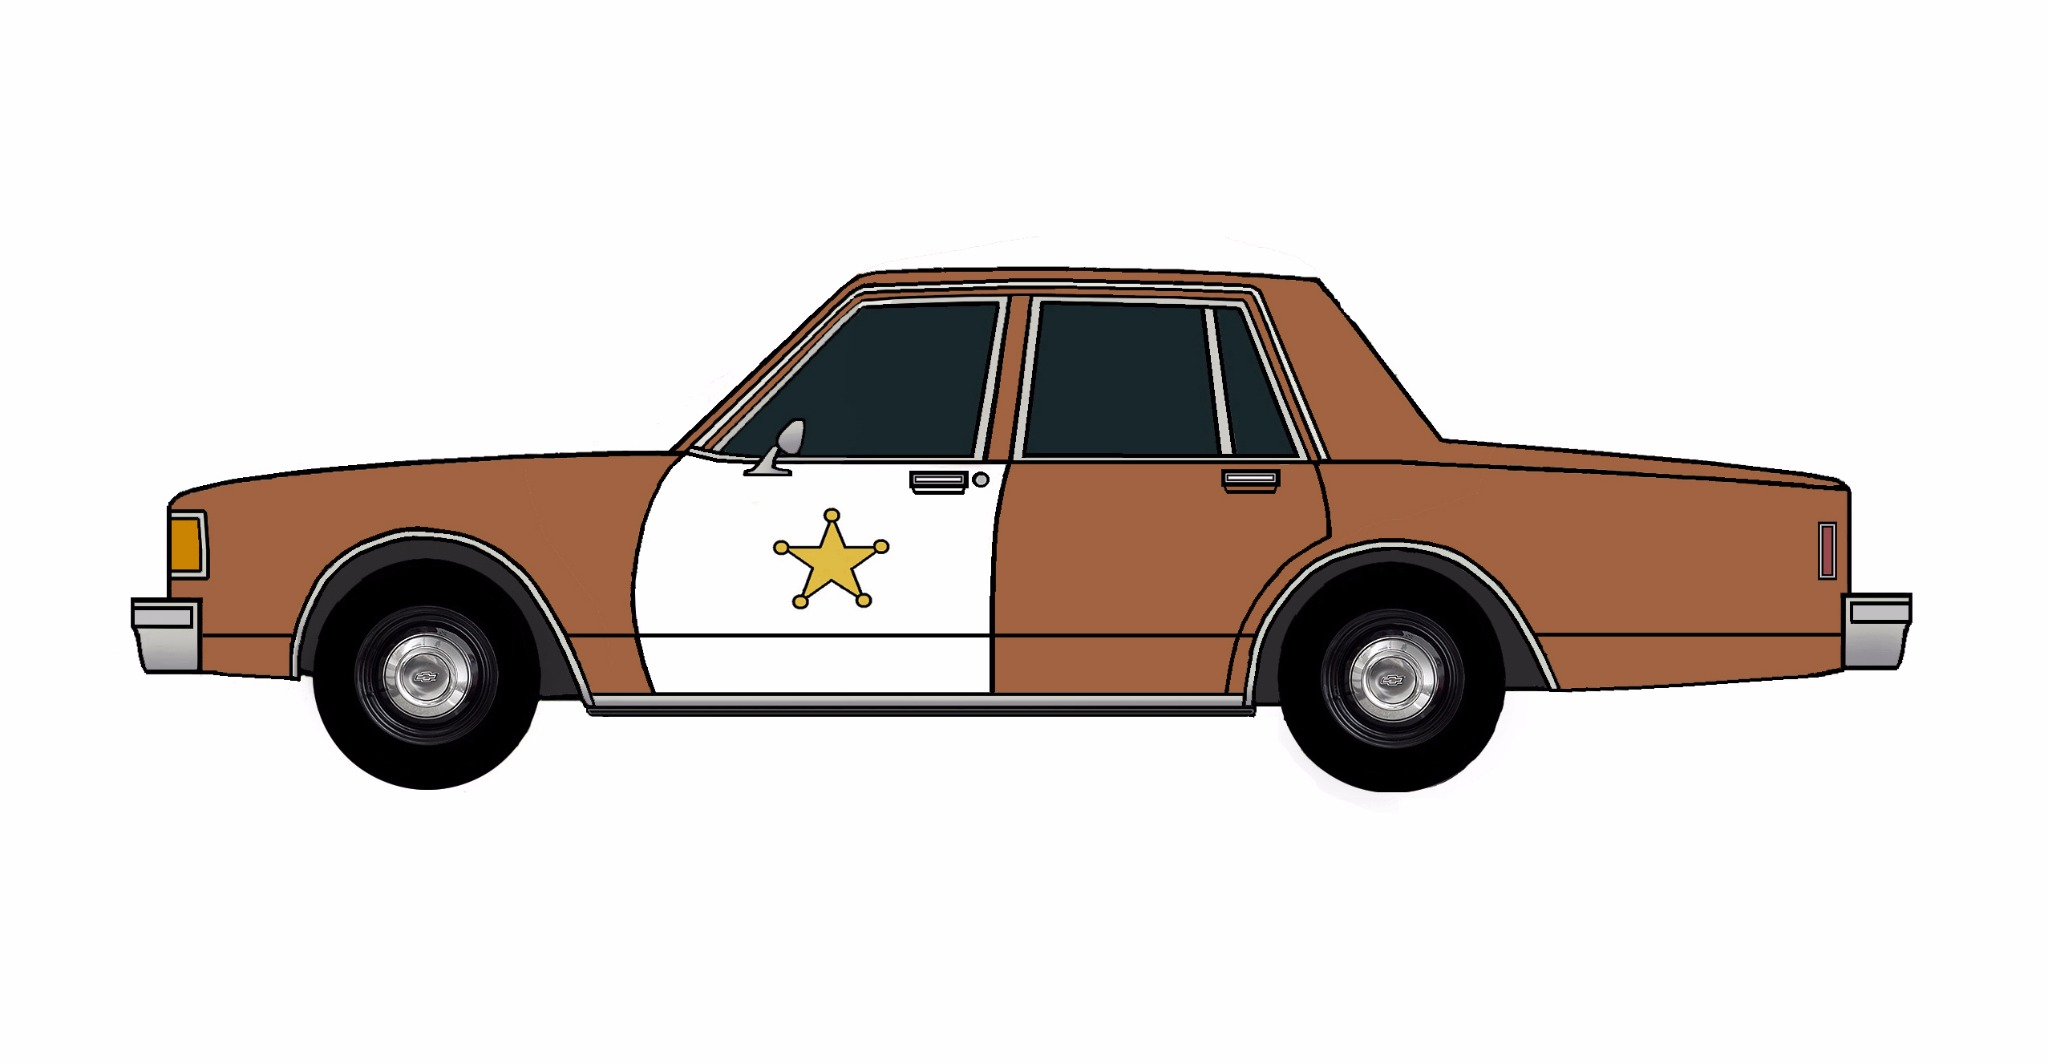 1986 Chevy Caprice 9C1 SIENNA BROWN